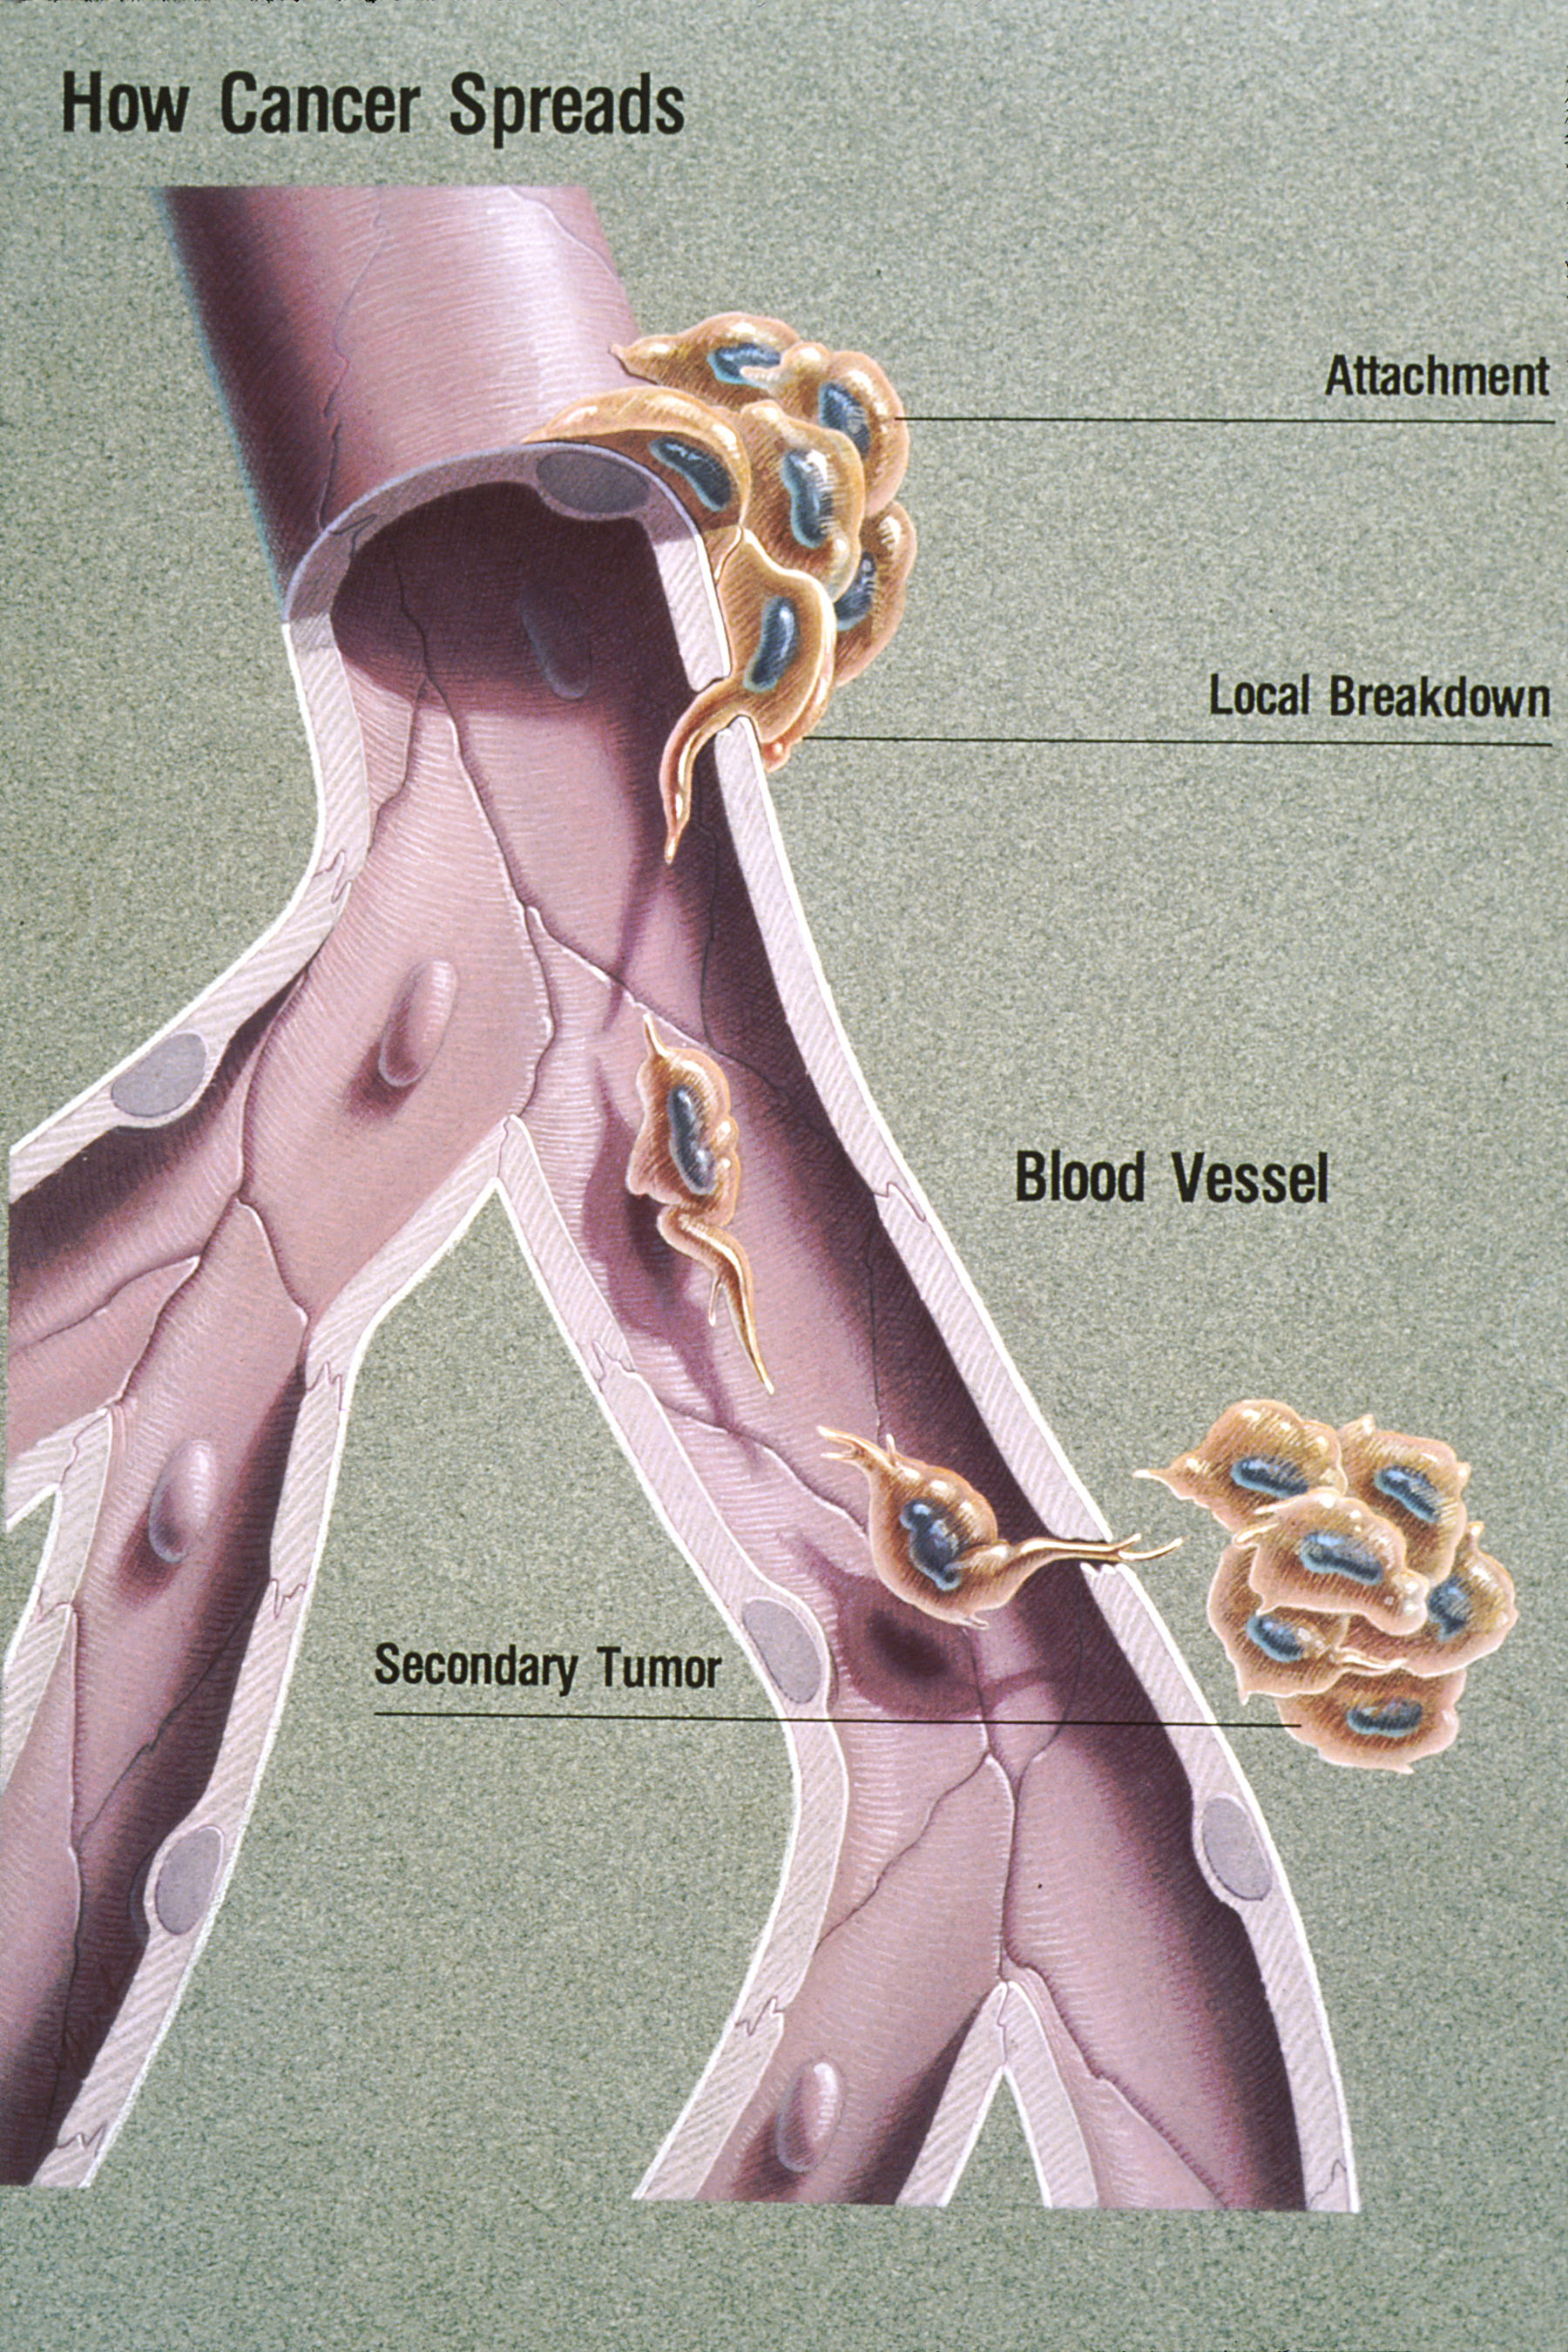 Bone Cancer, Primary Bone Cancers and Bone Metastases - asspub.ro